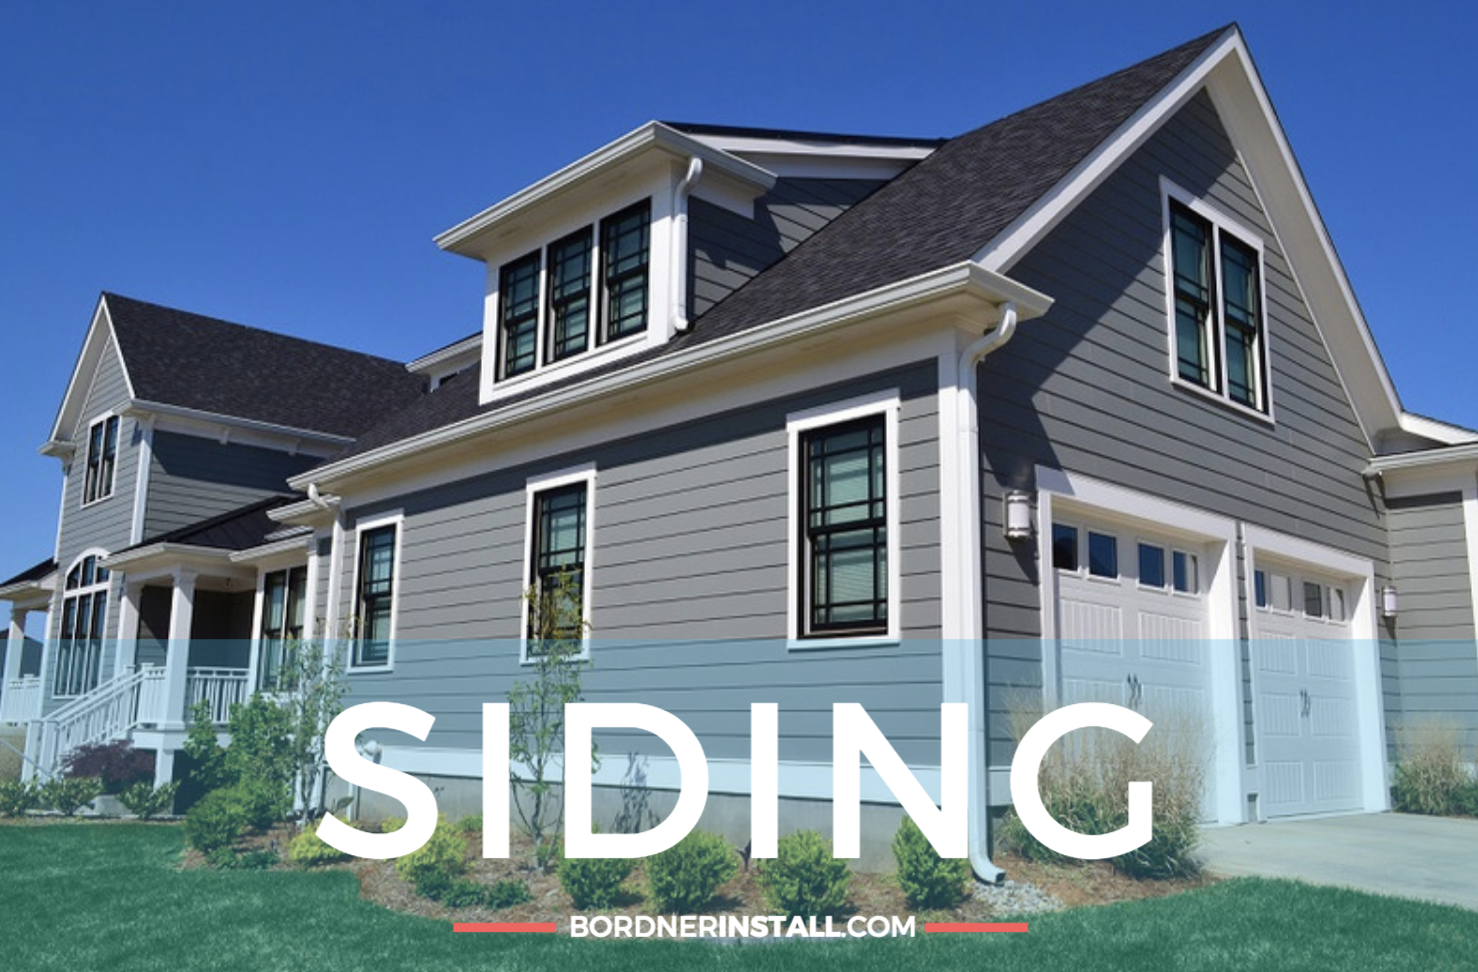 To Truly Protect Your Home From Winter Weather You Need Siding That Can Withstand The Elements Https Www Bordnerins House Siding Siding Protecting Your Home